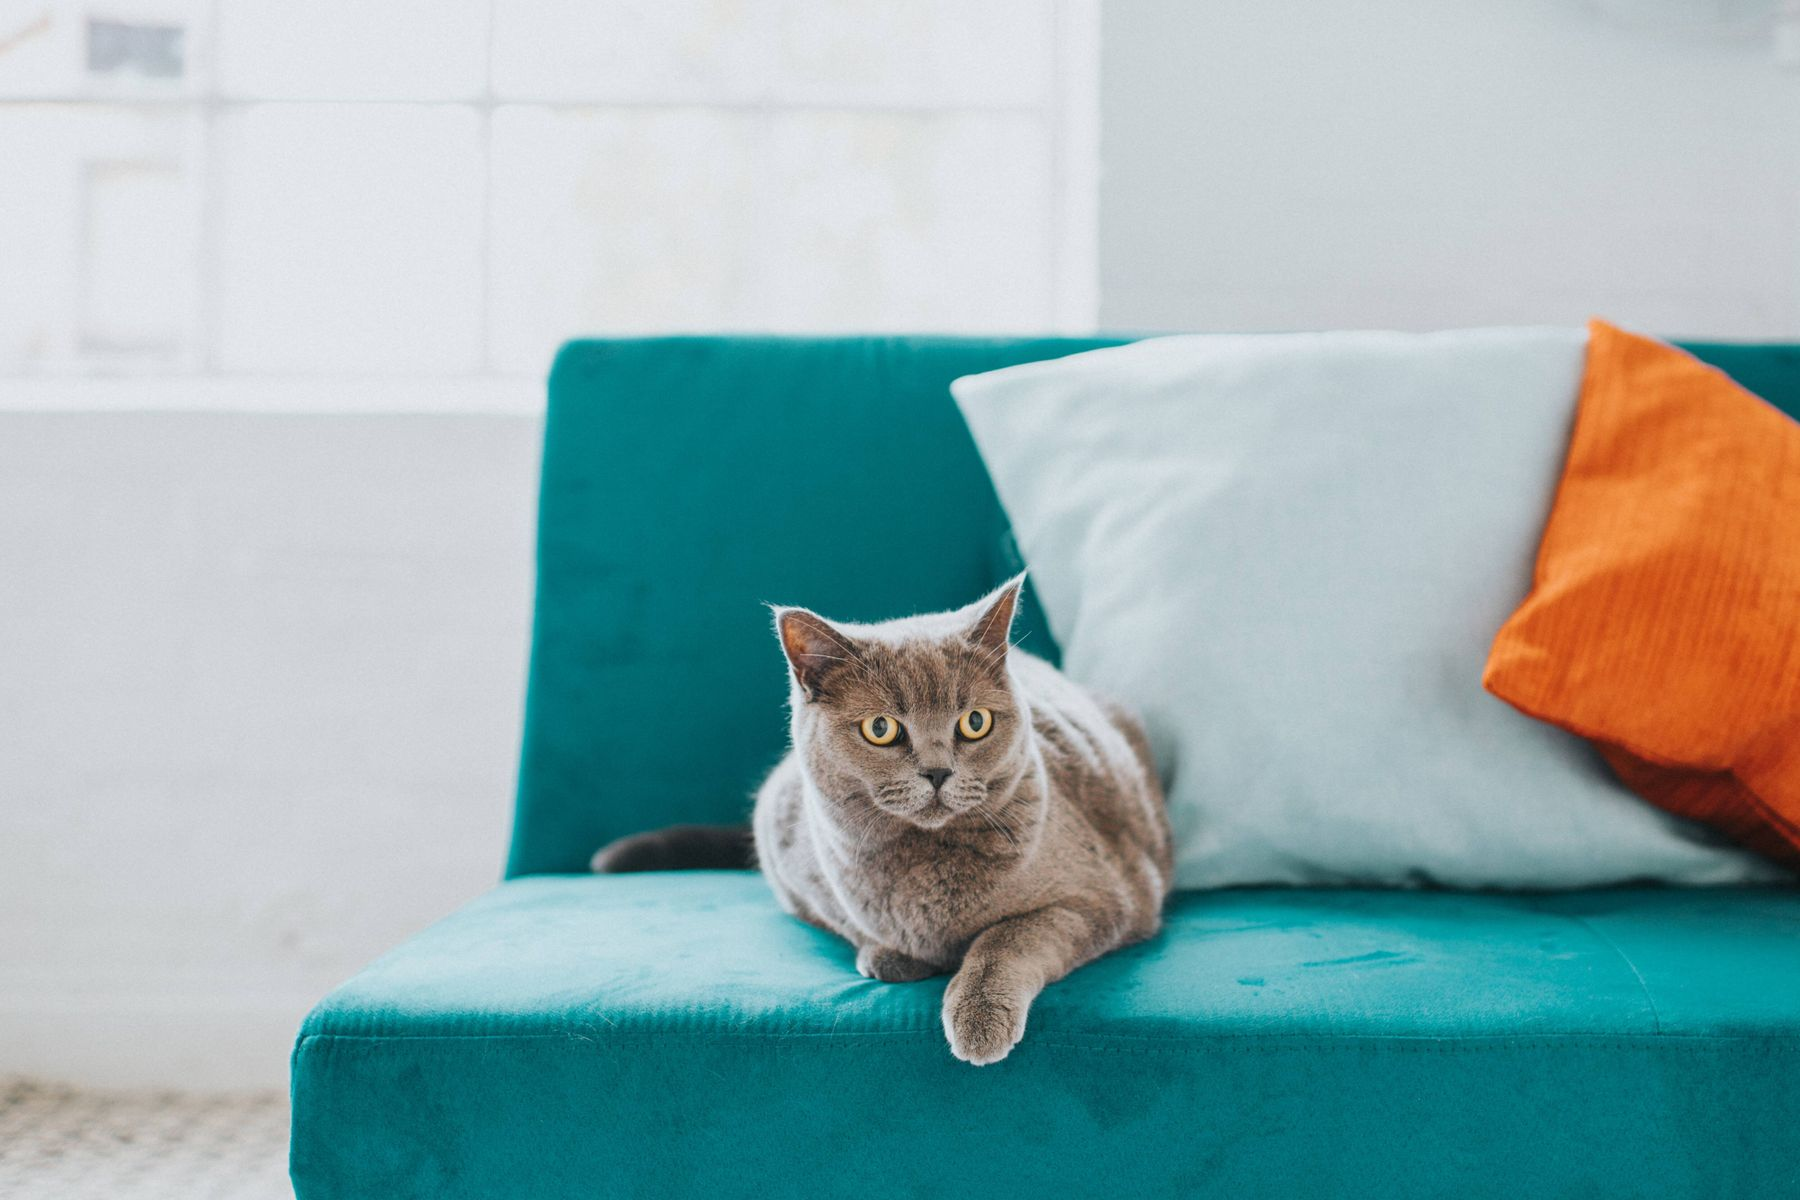 a grey cat sitting on a green couch